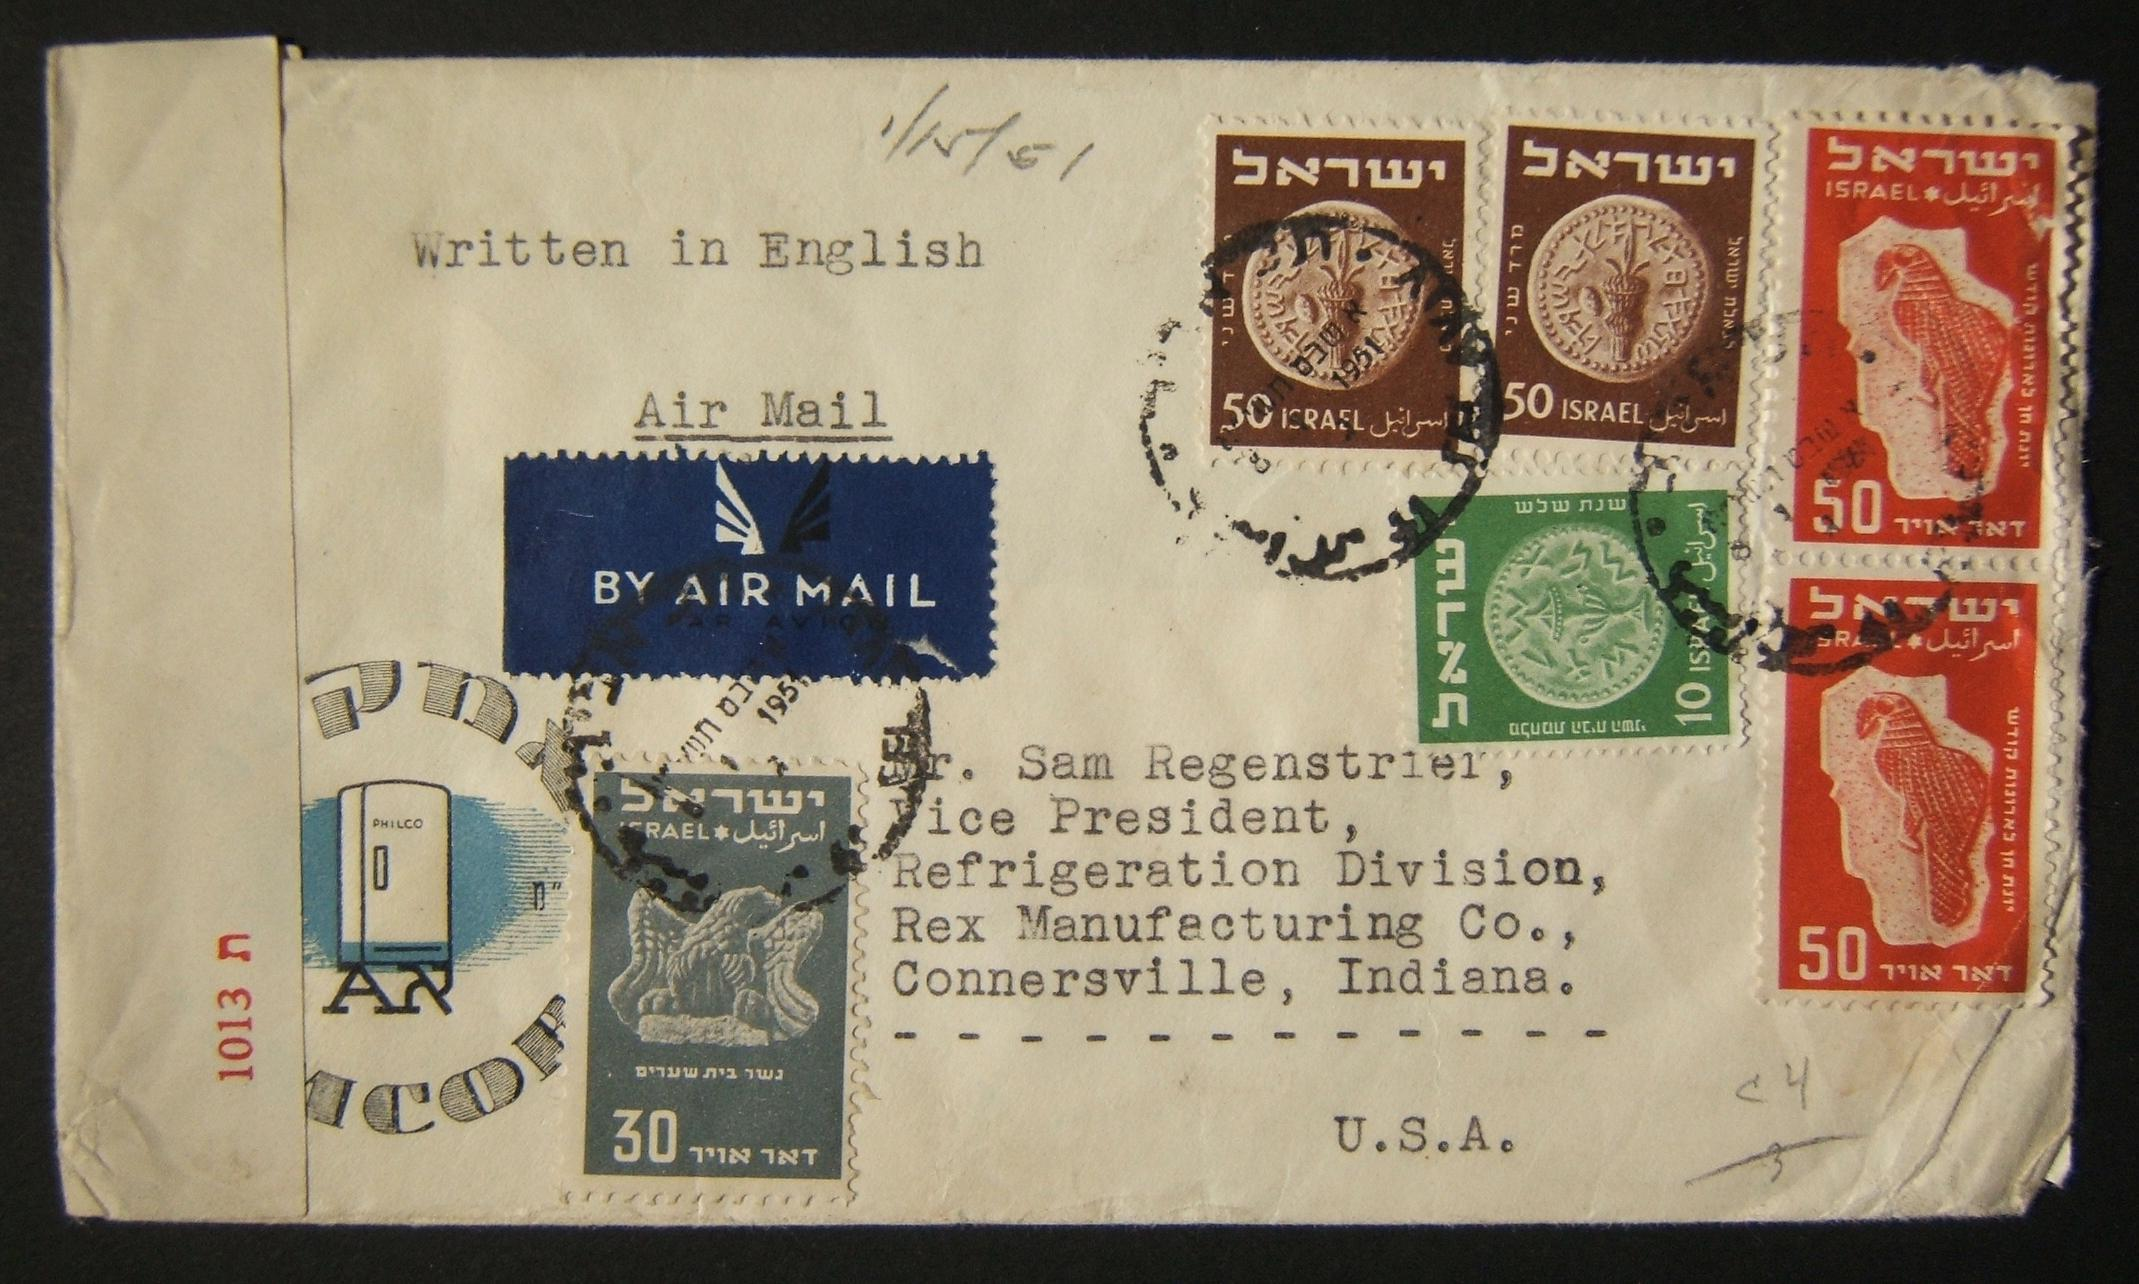 1950 1st airmail / PO's, rates & routes: 8-1-1951 business stationary airmail commercial cover ex TLV to INDIANA franked 240pr at the FA-2a period rate (80pr letter + 3x50pr additi